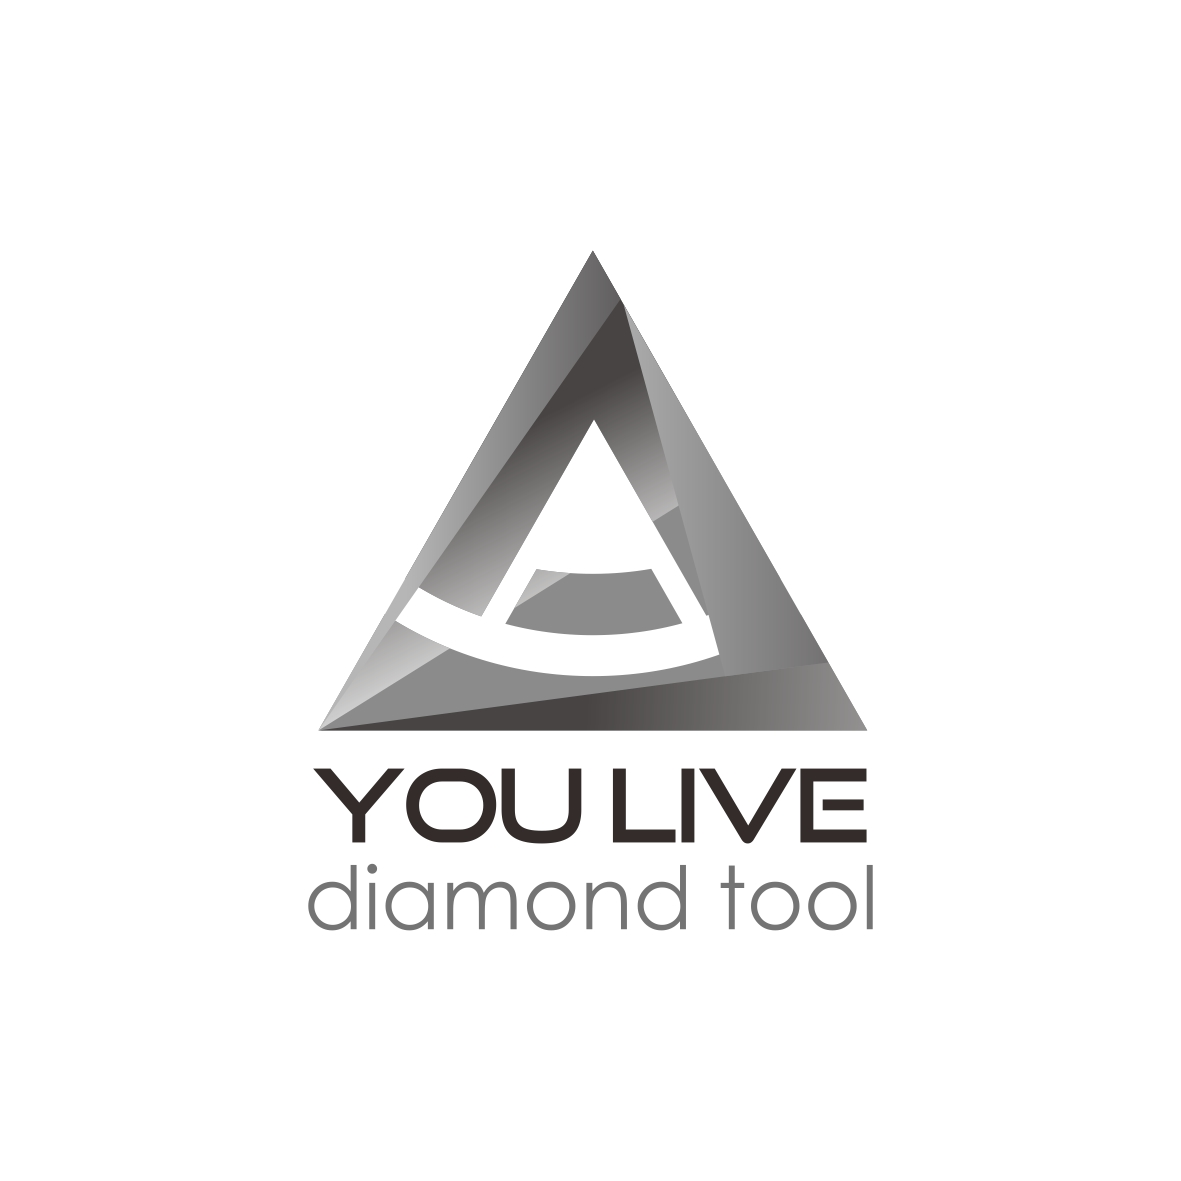 Poyang Youlive Diamond Tools Co.,Ltd logo